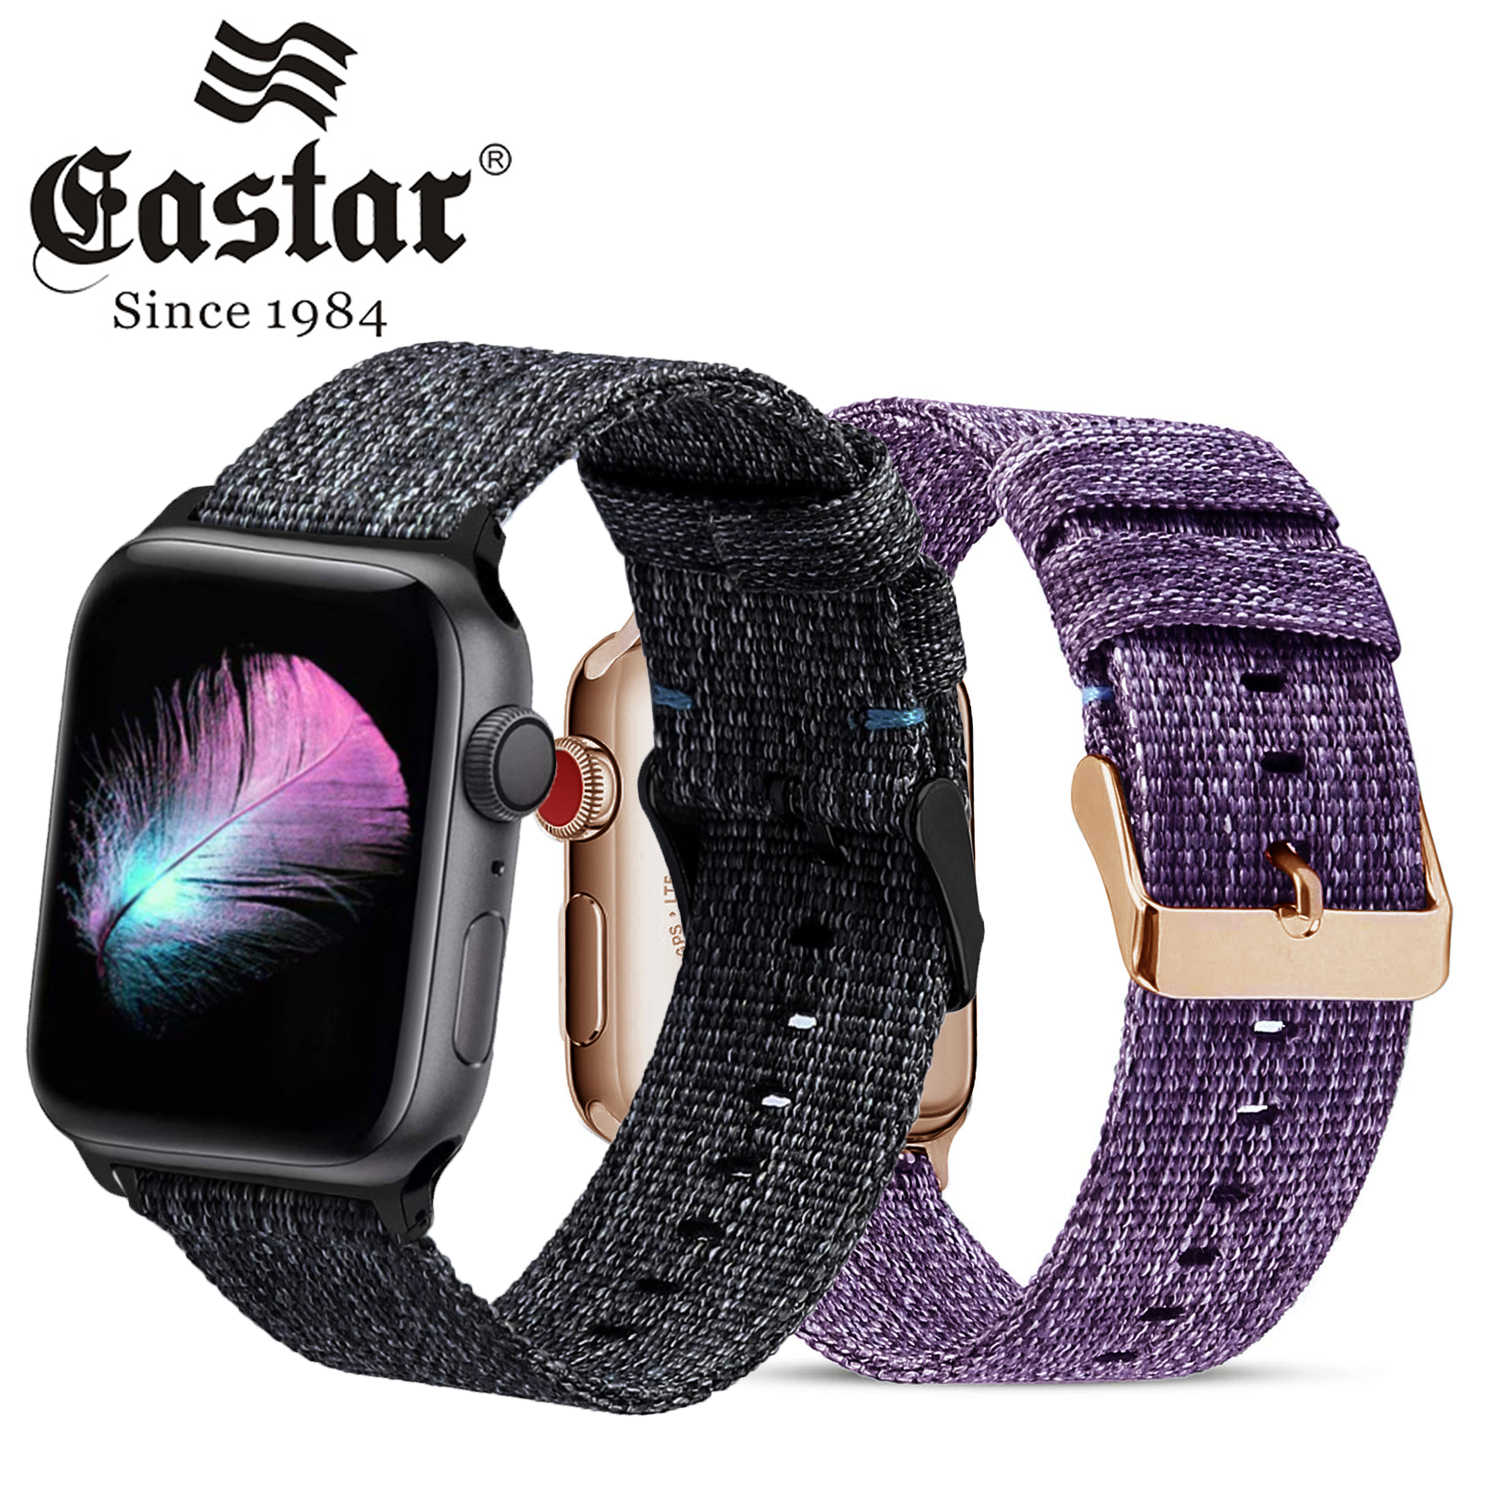 Woven Nylon strap For Apple Watch Series 3/2/1 38MM 42MM Breathable Replacement Strap Sport Loop for iwatch series 4 40MM 44MM